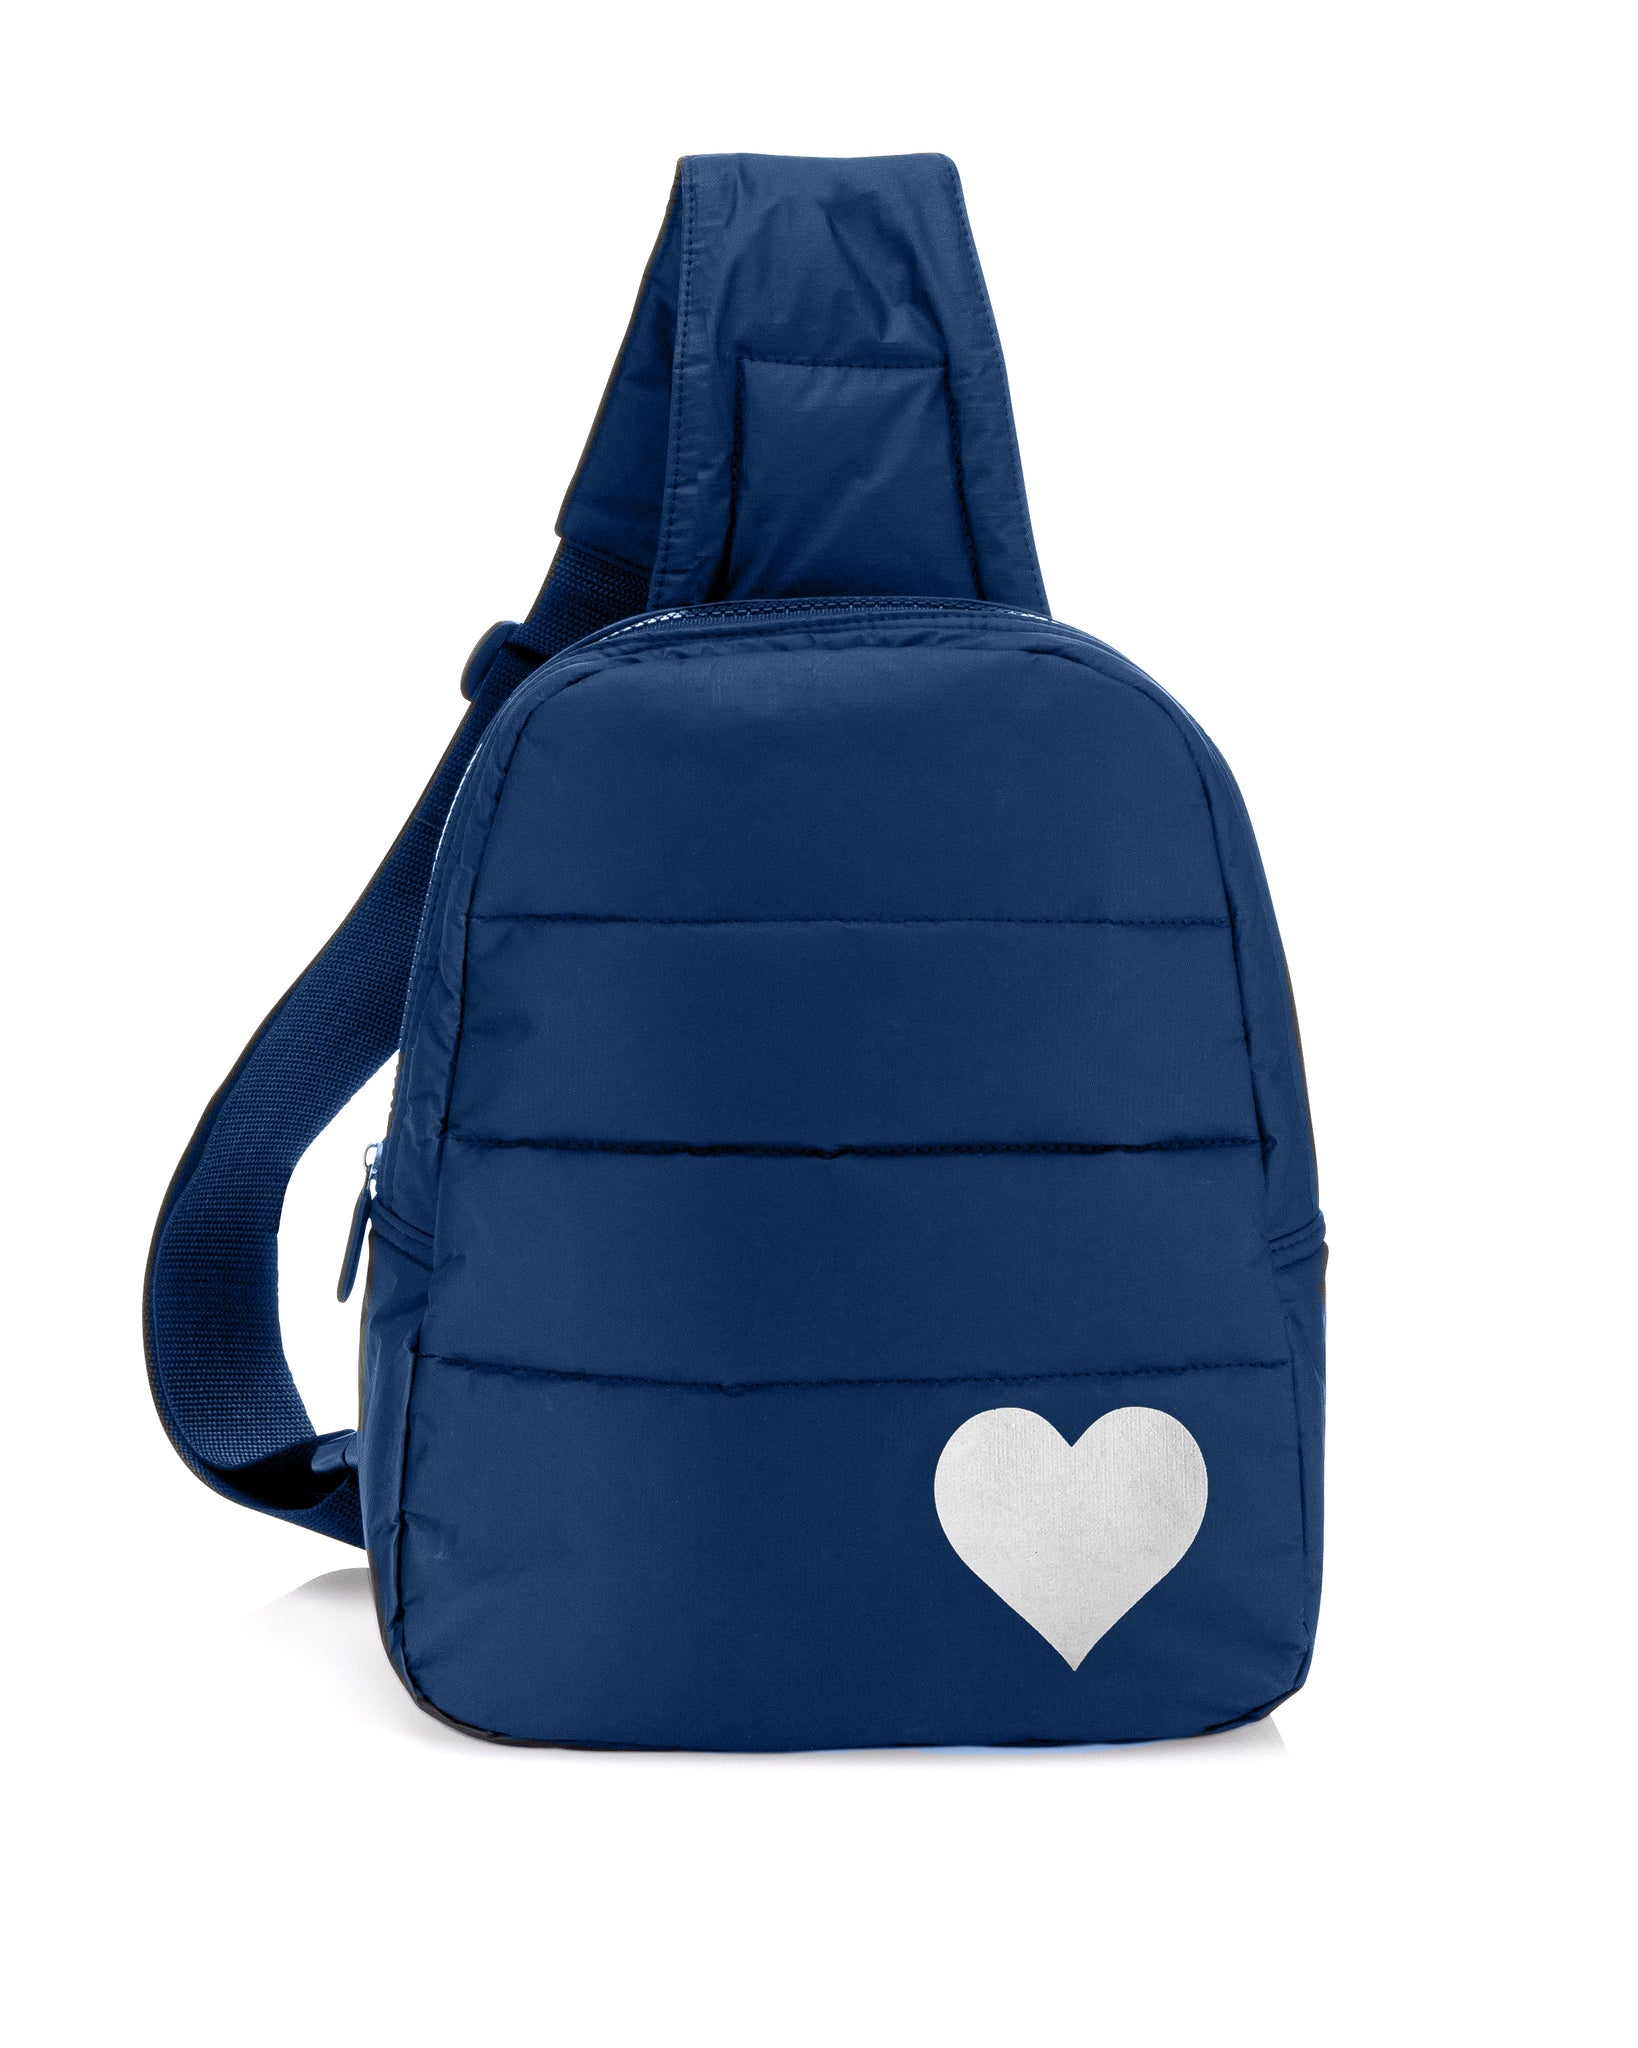 Cute Crossbody Fashion Hi Love Navy Backpack with Metallic Silver Heart